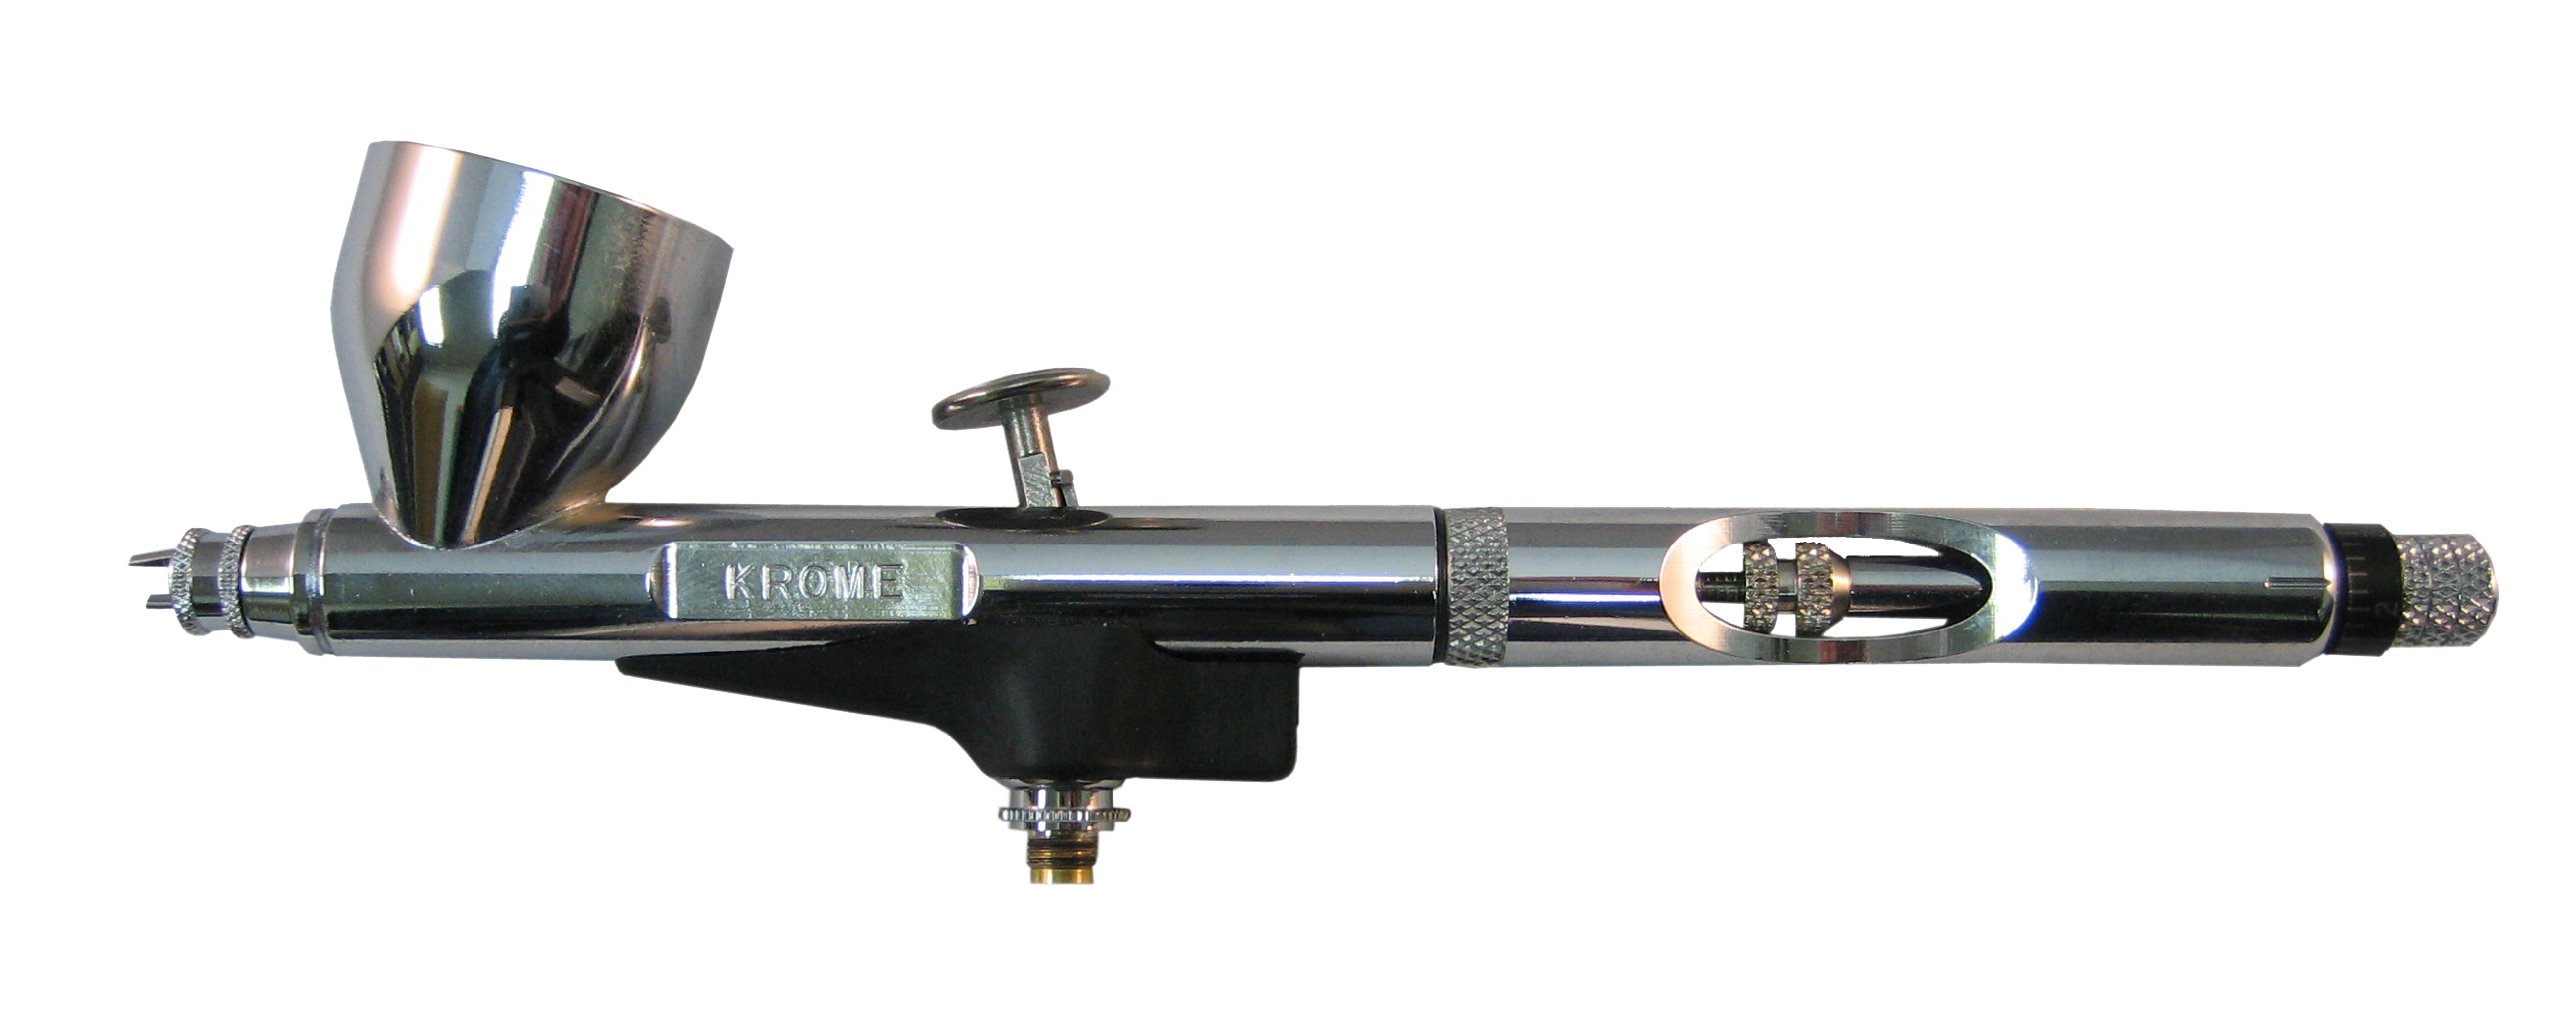 Badger Air-Brush Company RK-1 Krome Airbrush 2-in-1 Ultra Fine Airbrush with Additional Fine Tip, Spray Regulator and Needle by Badger Air-Brush Co.